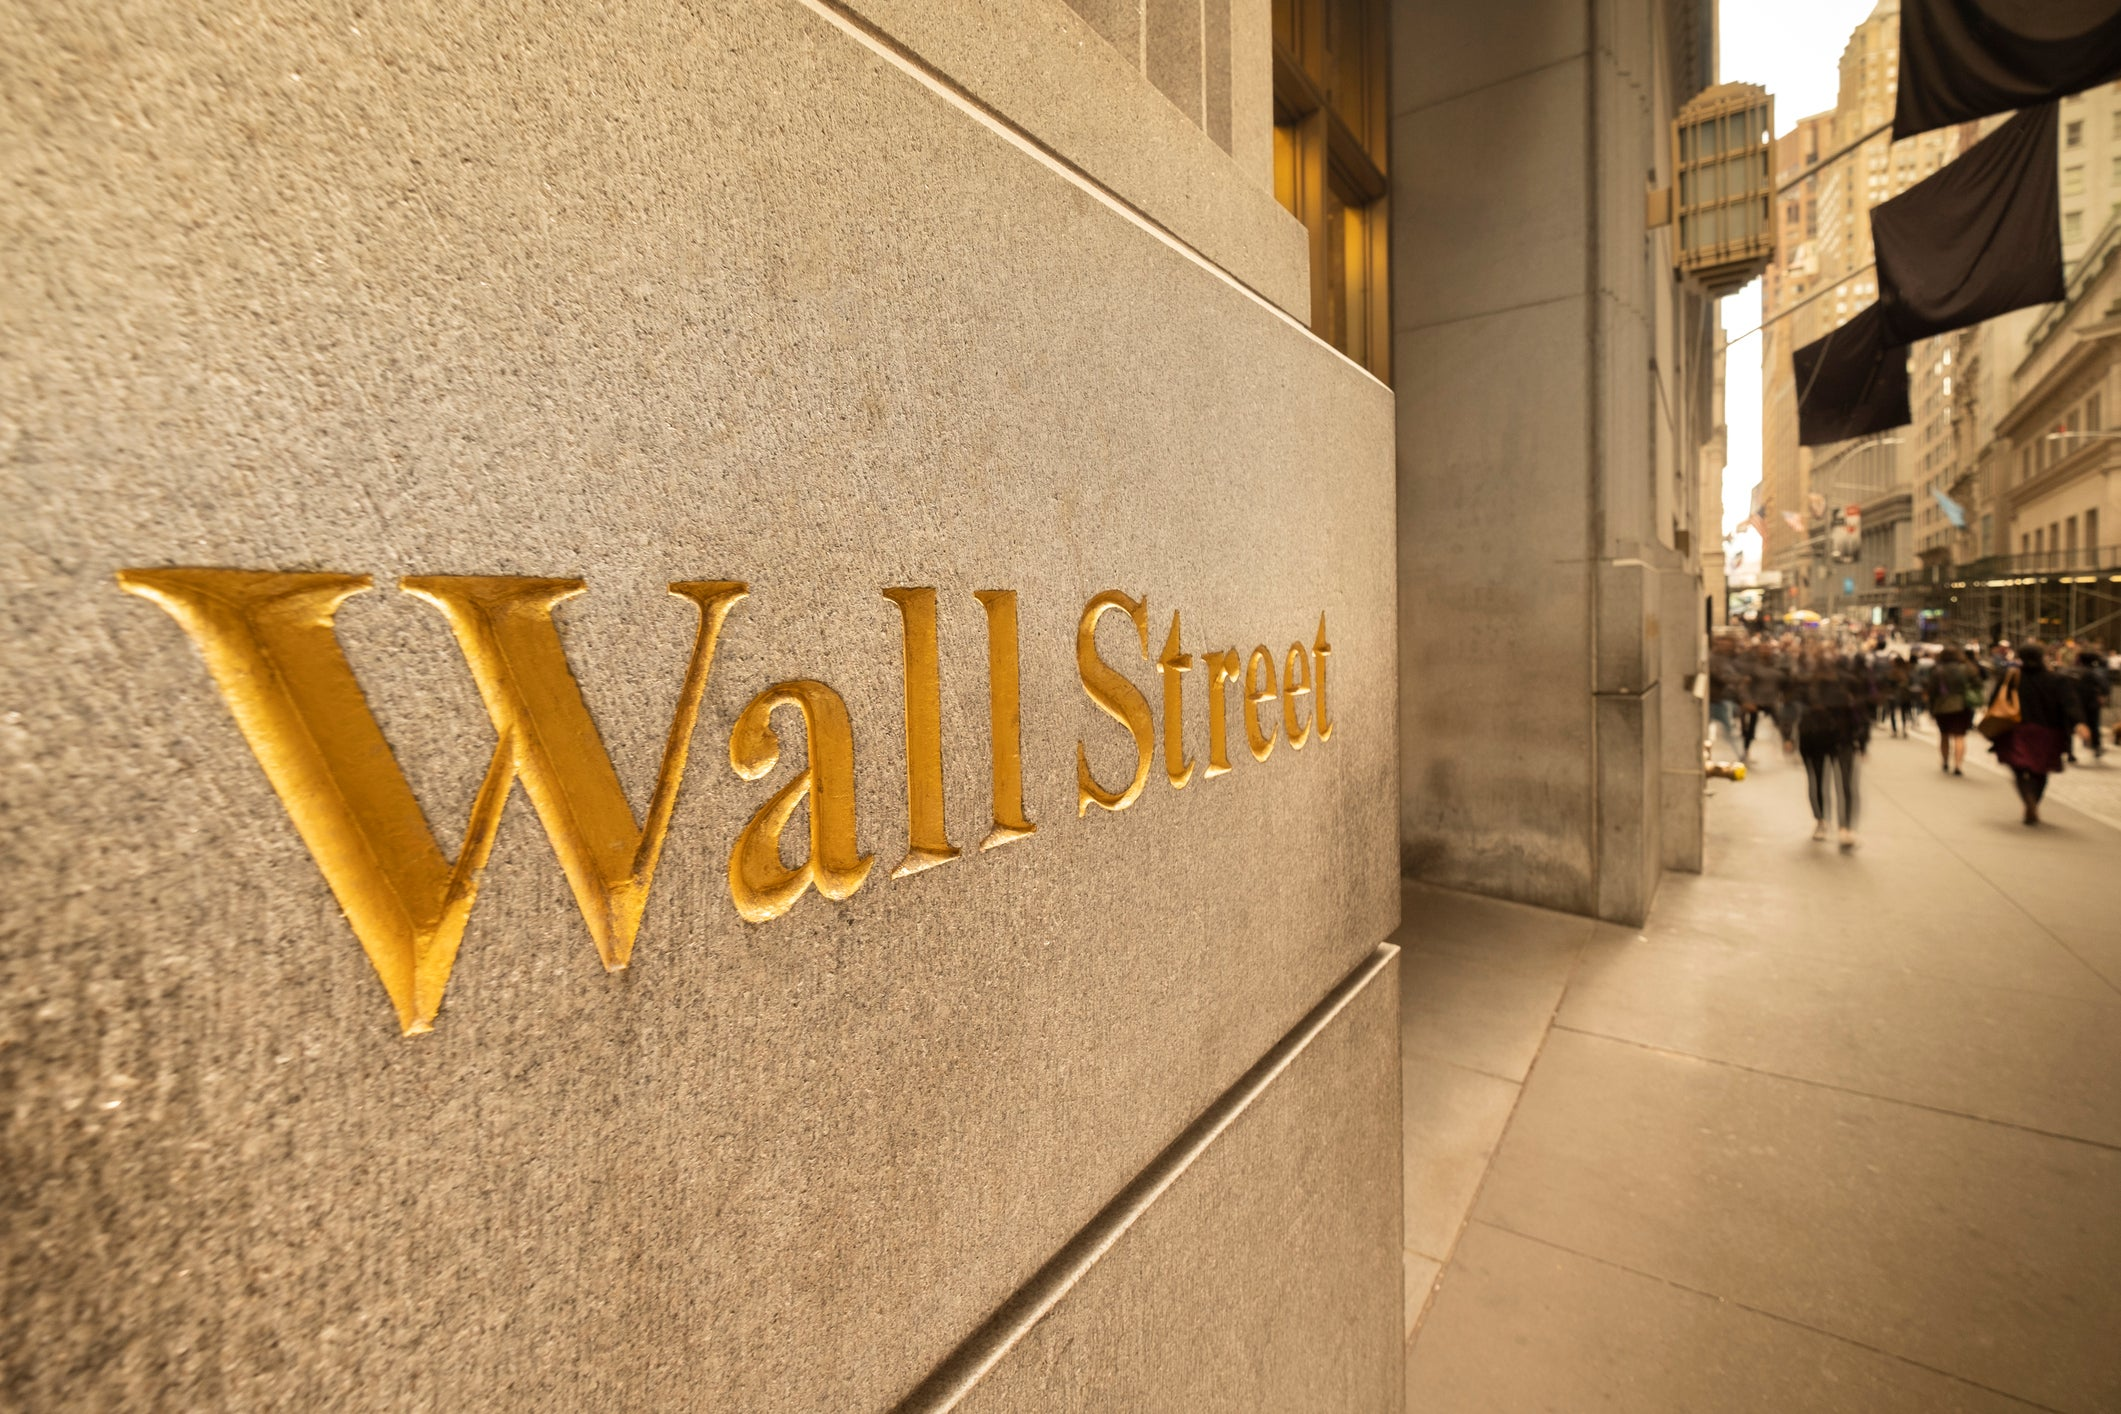 3 Dividend Stocks With 133% to 155% Upside, According to Wall Street